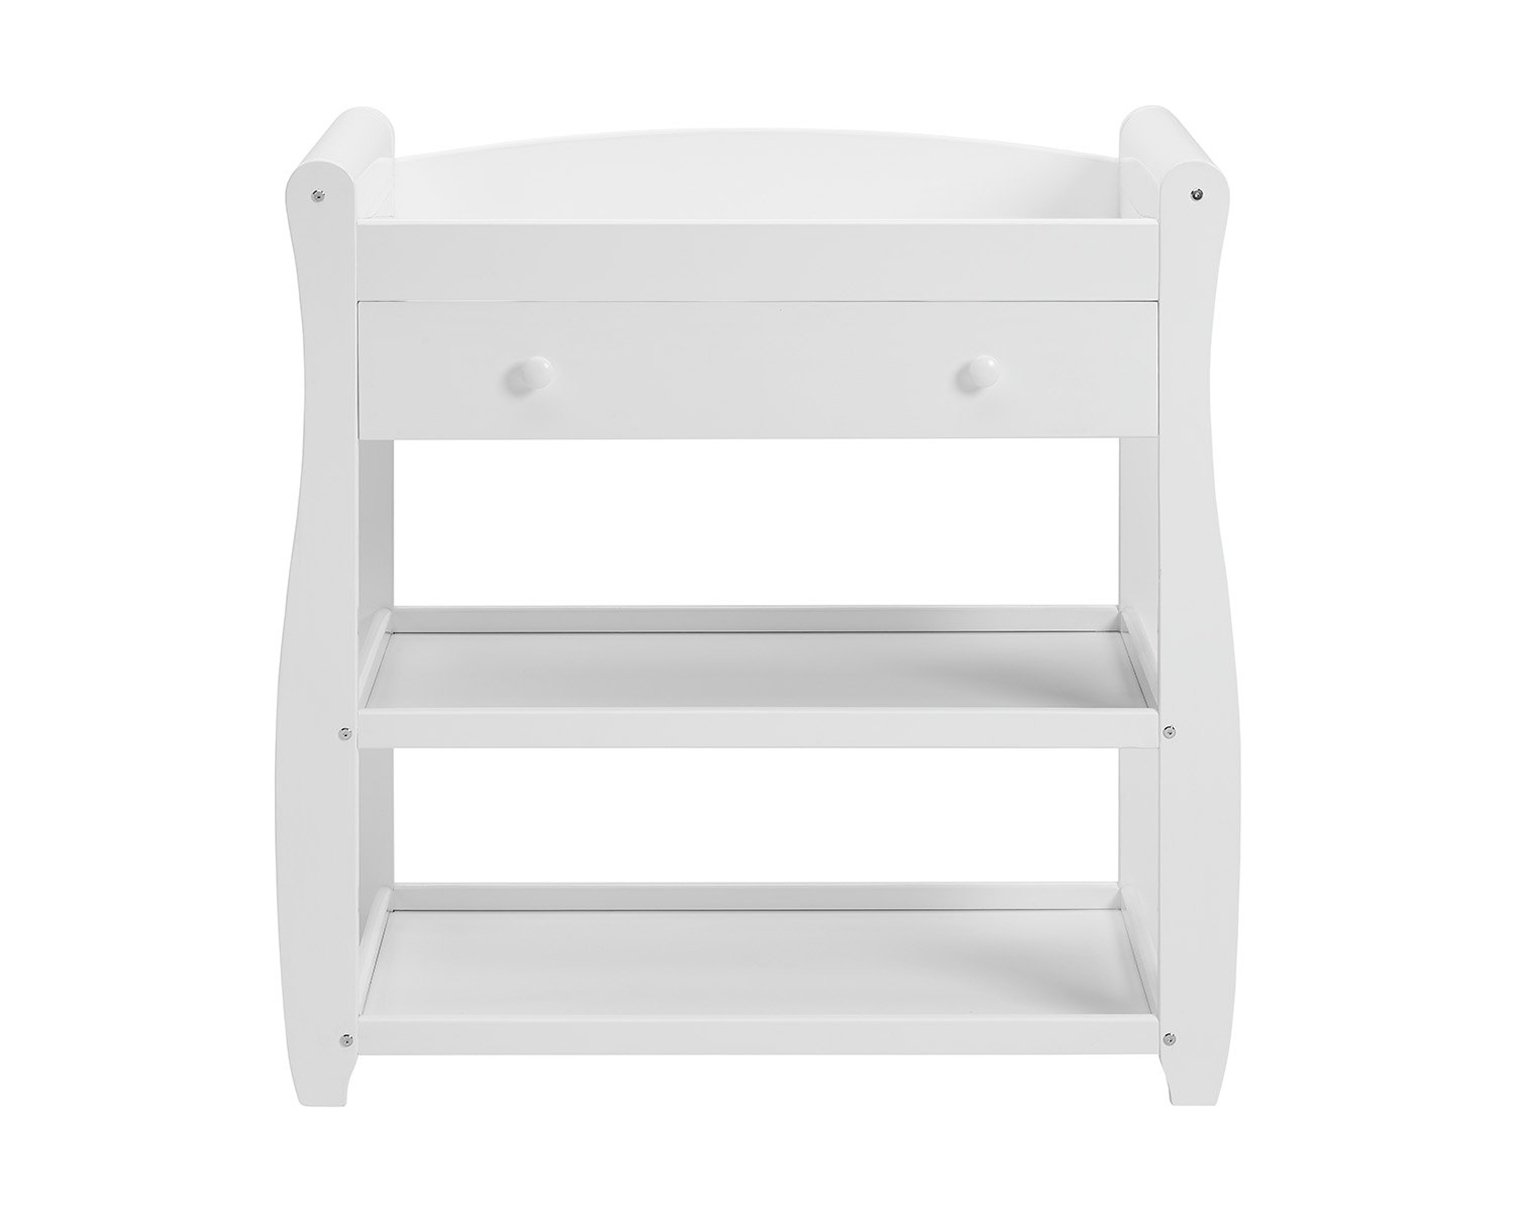 Babymore Sleigh Changer with Drawer (White)  Stylish and practical designed Safe place for changing With 1 drawer and 2 shelves for baby changing essentials 2